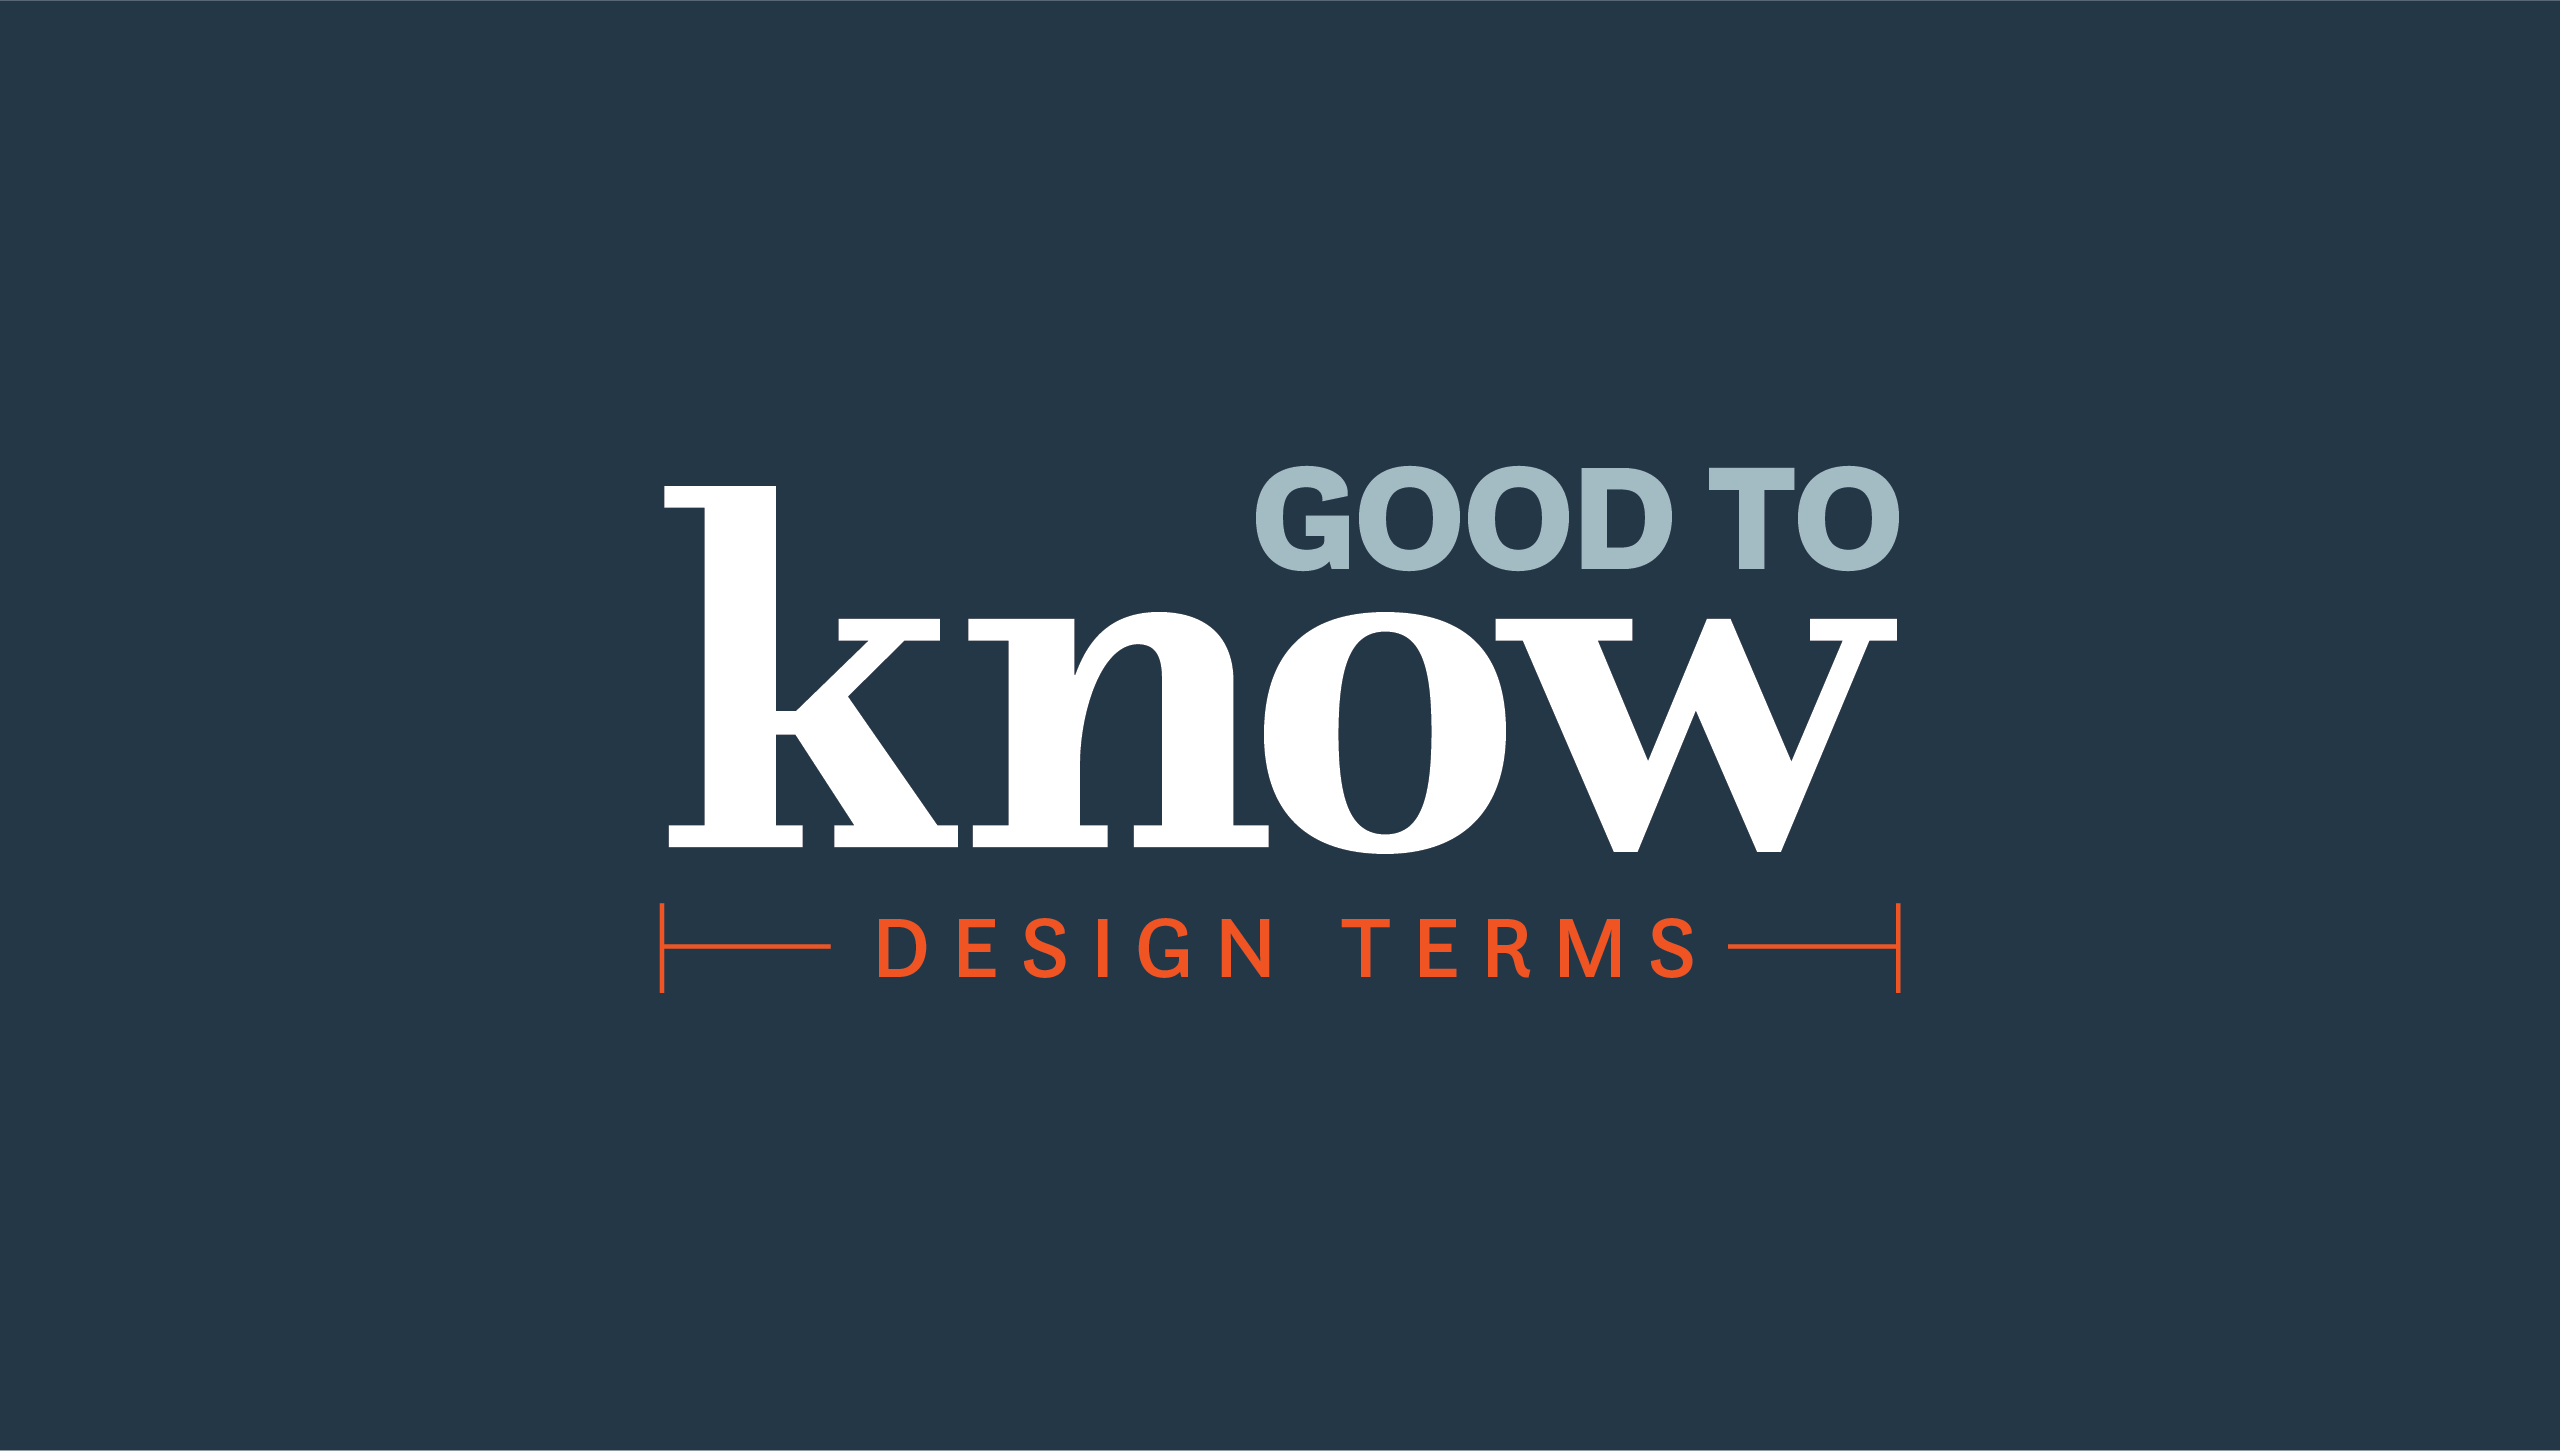 MADE provides information on good to know design terms